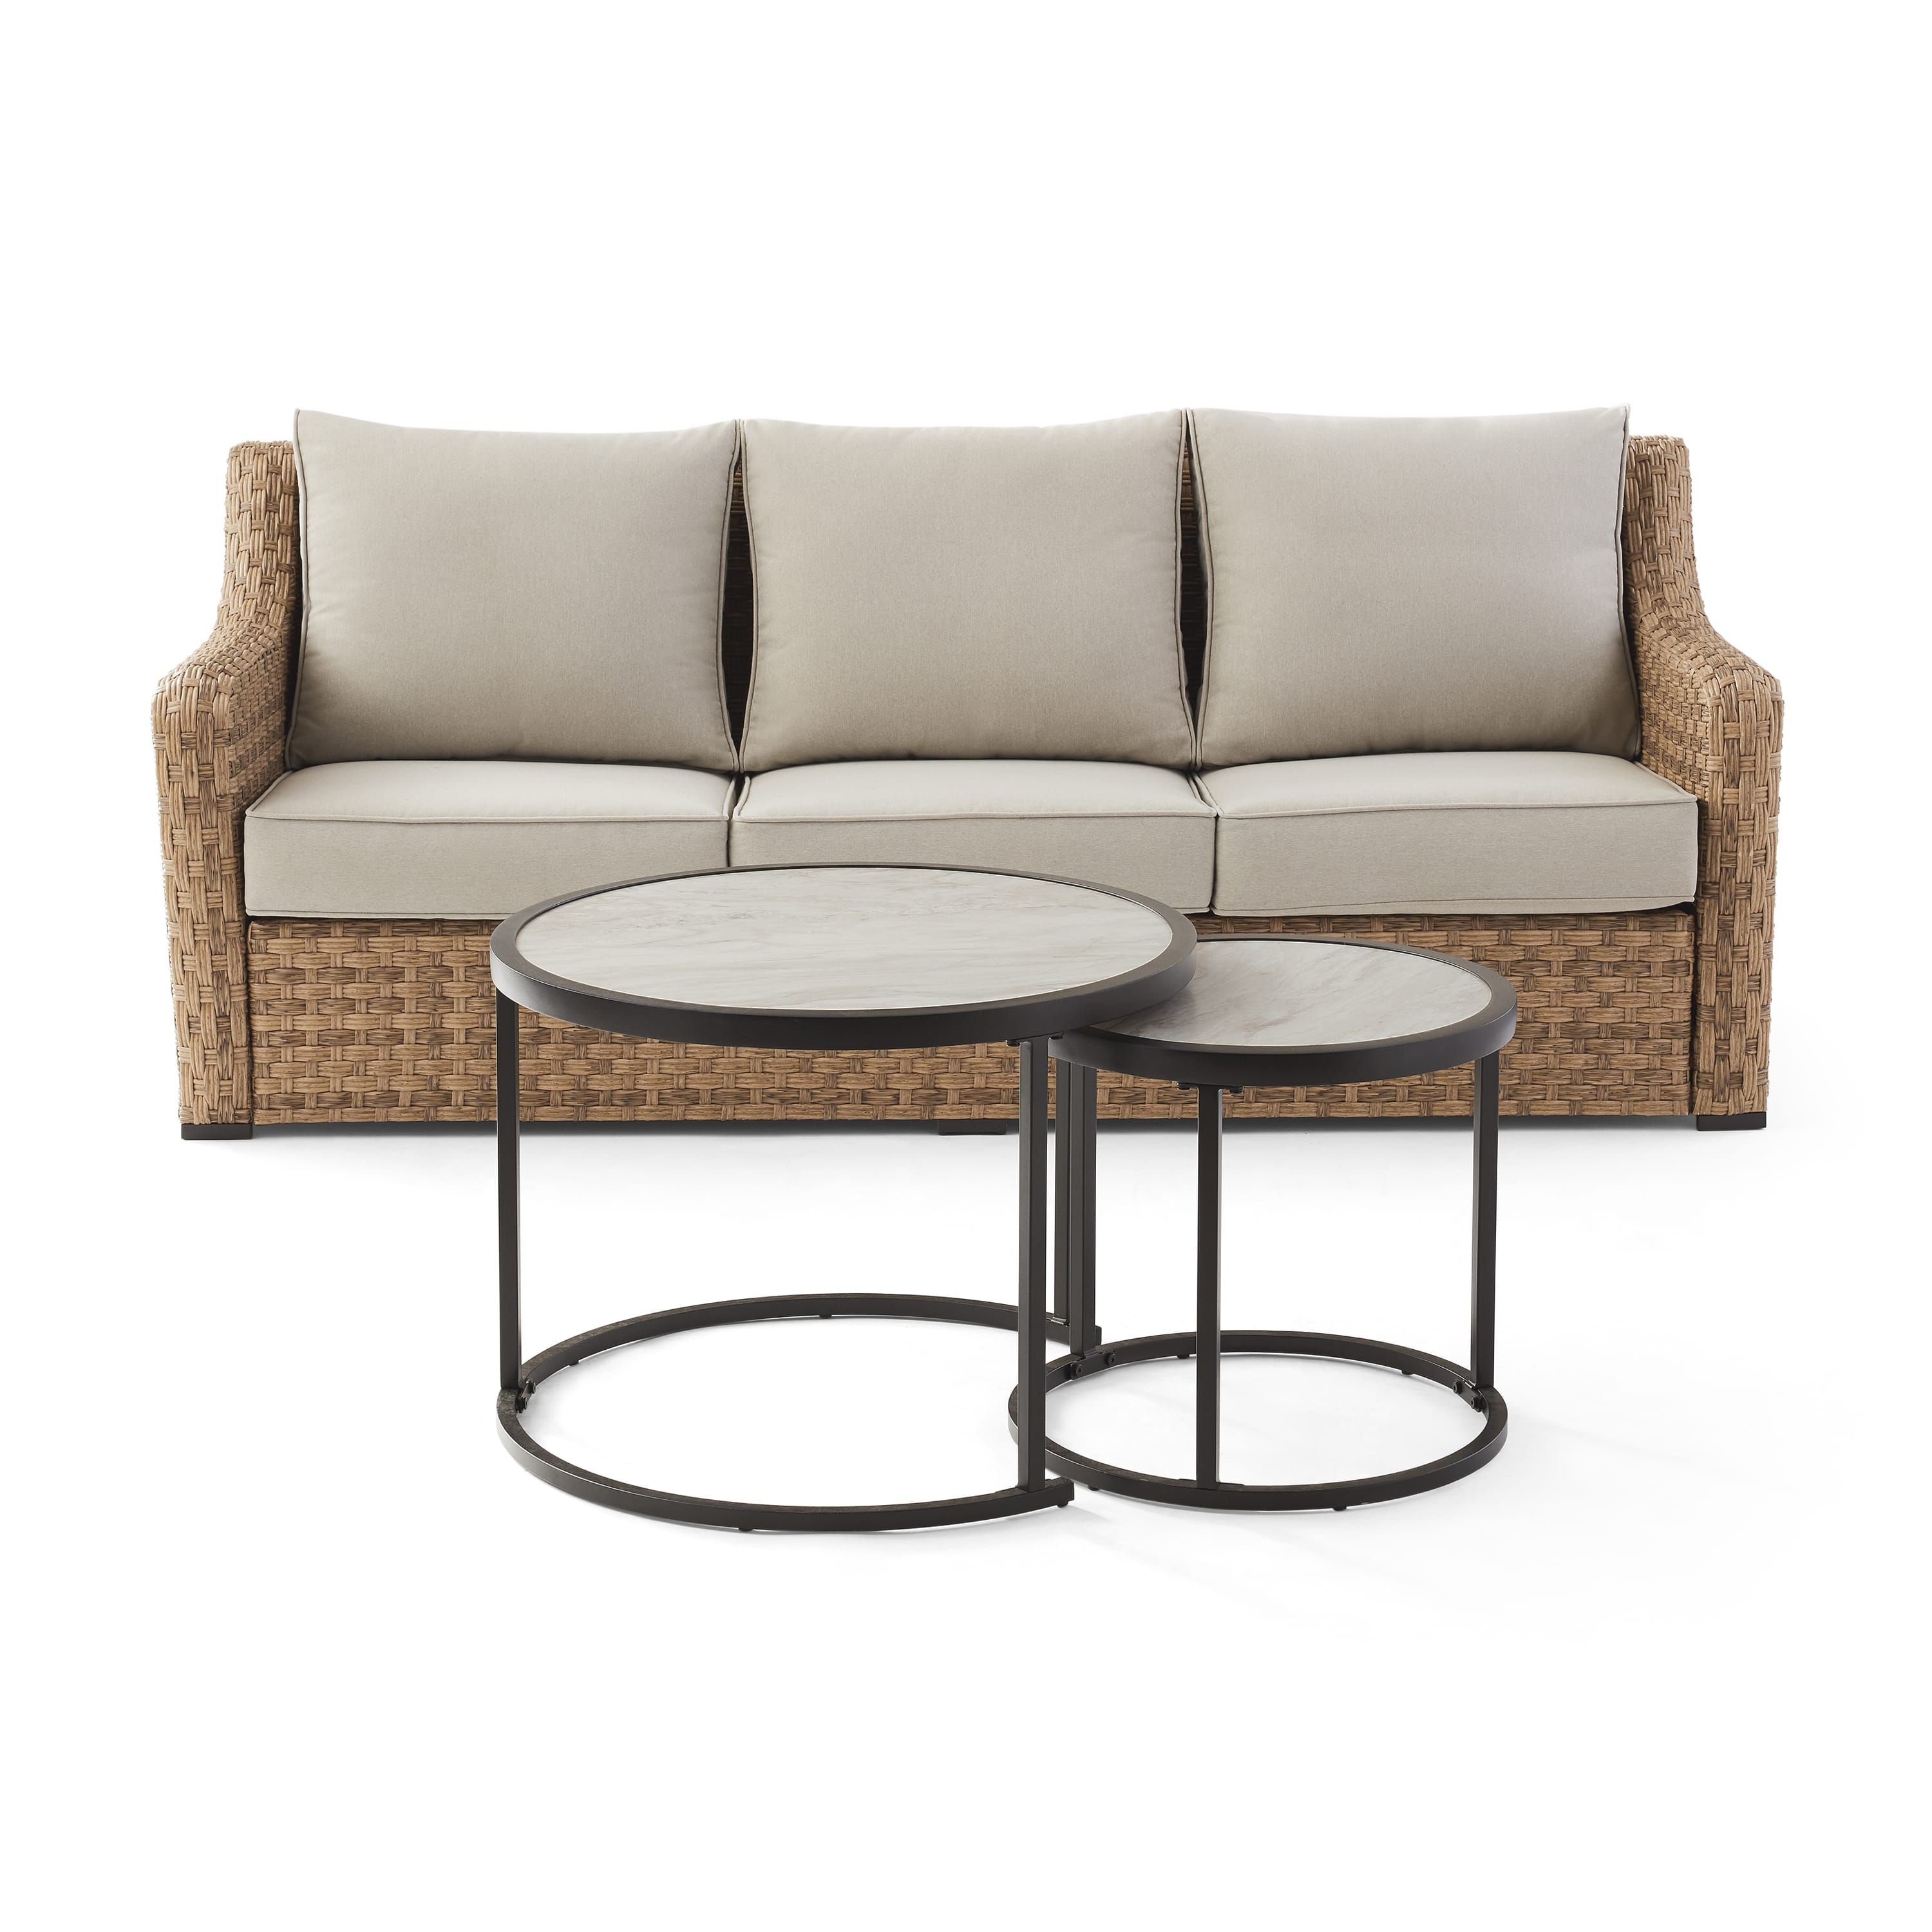 The Number One Affordable Patio Sofa at Walmart